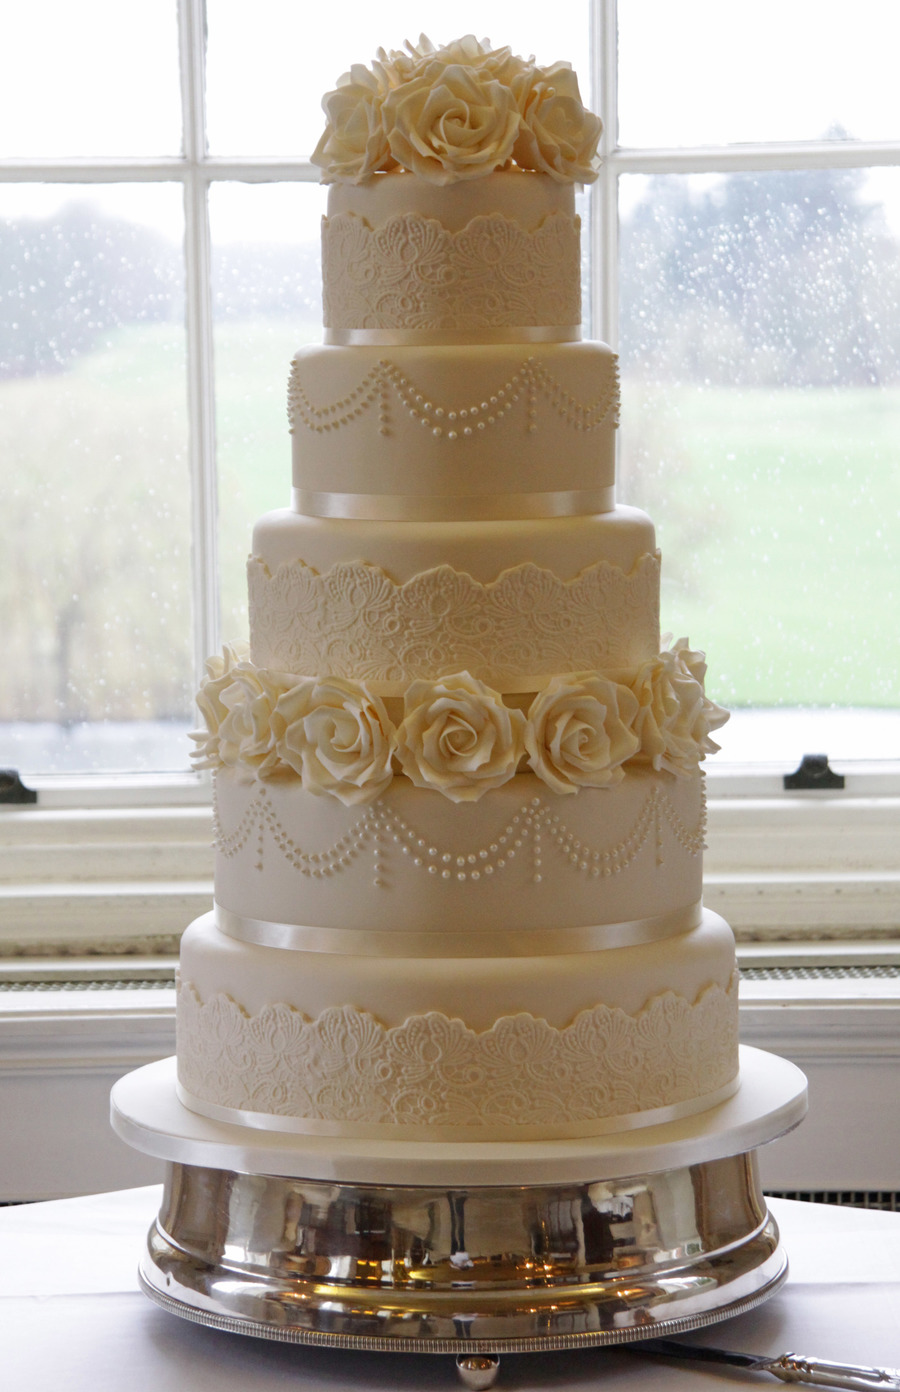 My Final Wedding Cake Of 2012 It Was Such A Beautiful Venue And Set Up I Love My Job on Cake Central